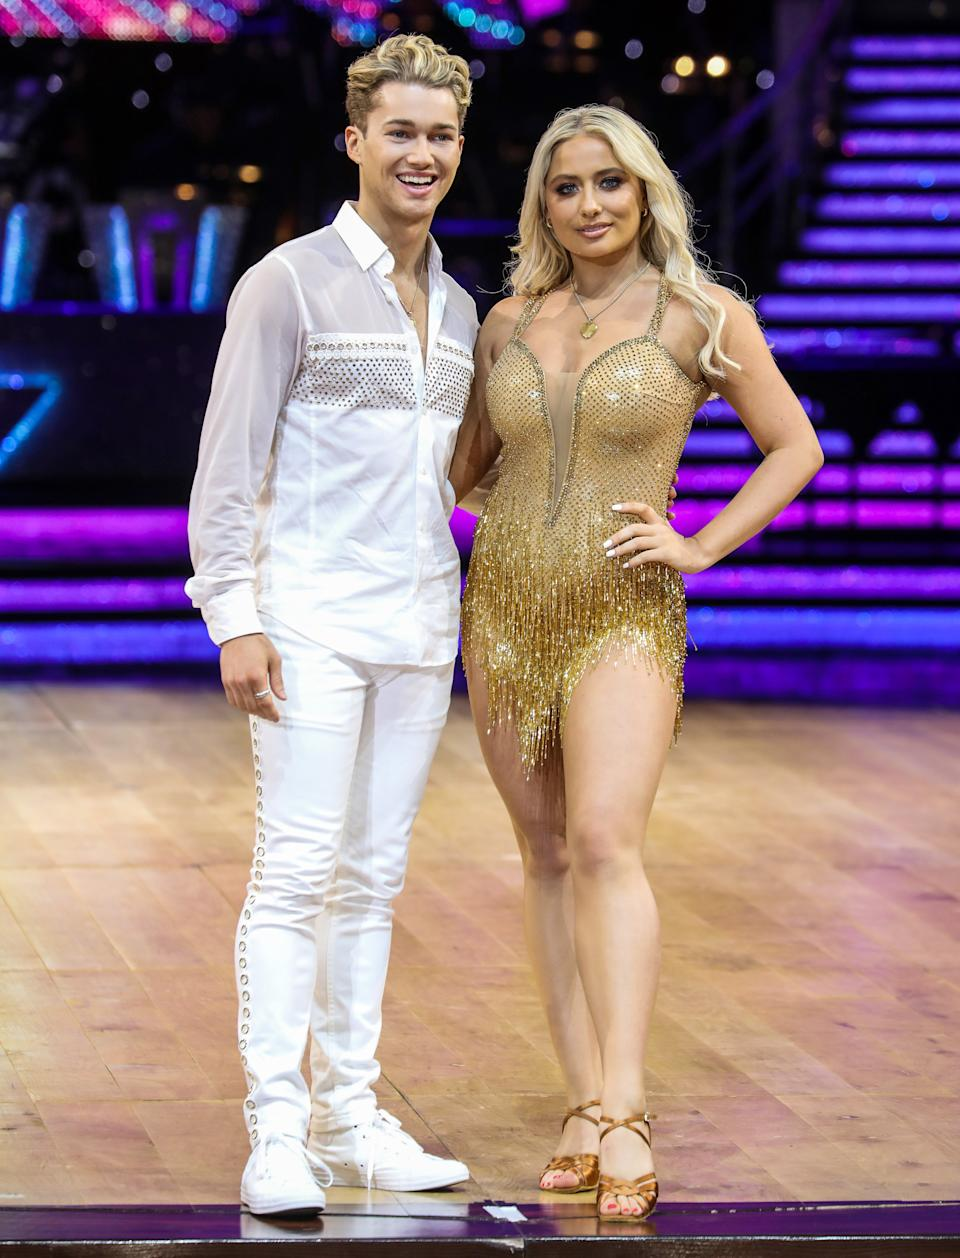 Saffron Barker was the second social media star to sign up to Strictly, after Joe Sugg. (Brett Cove / Echoes Wire / Barcroft Media via Getty Images)